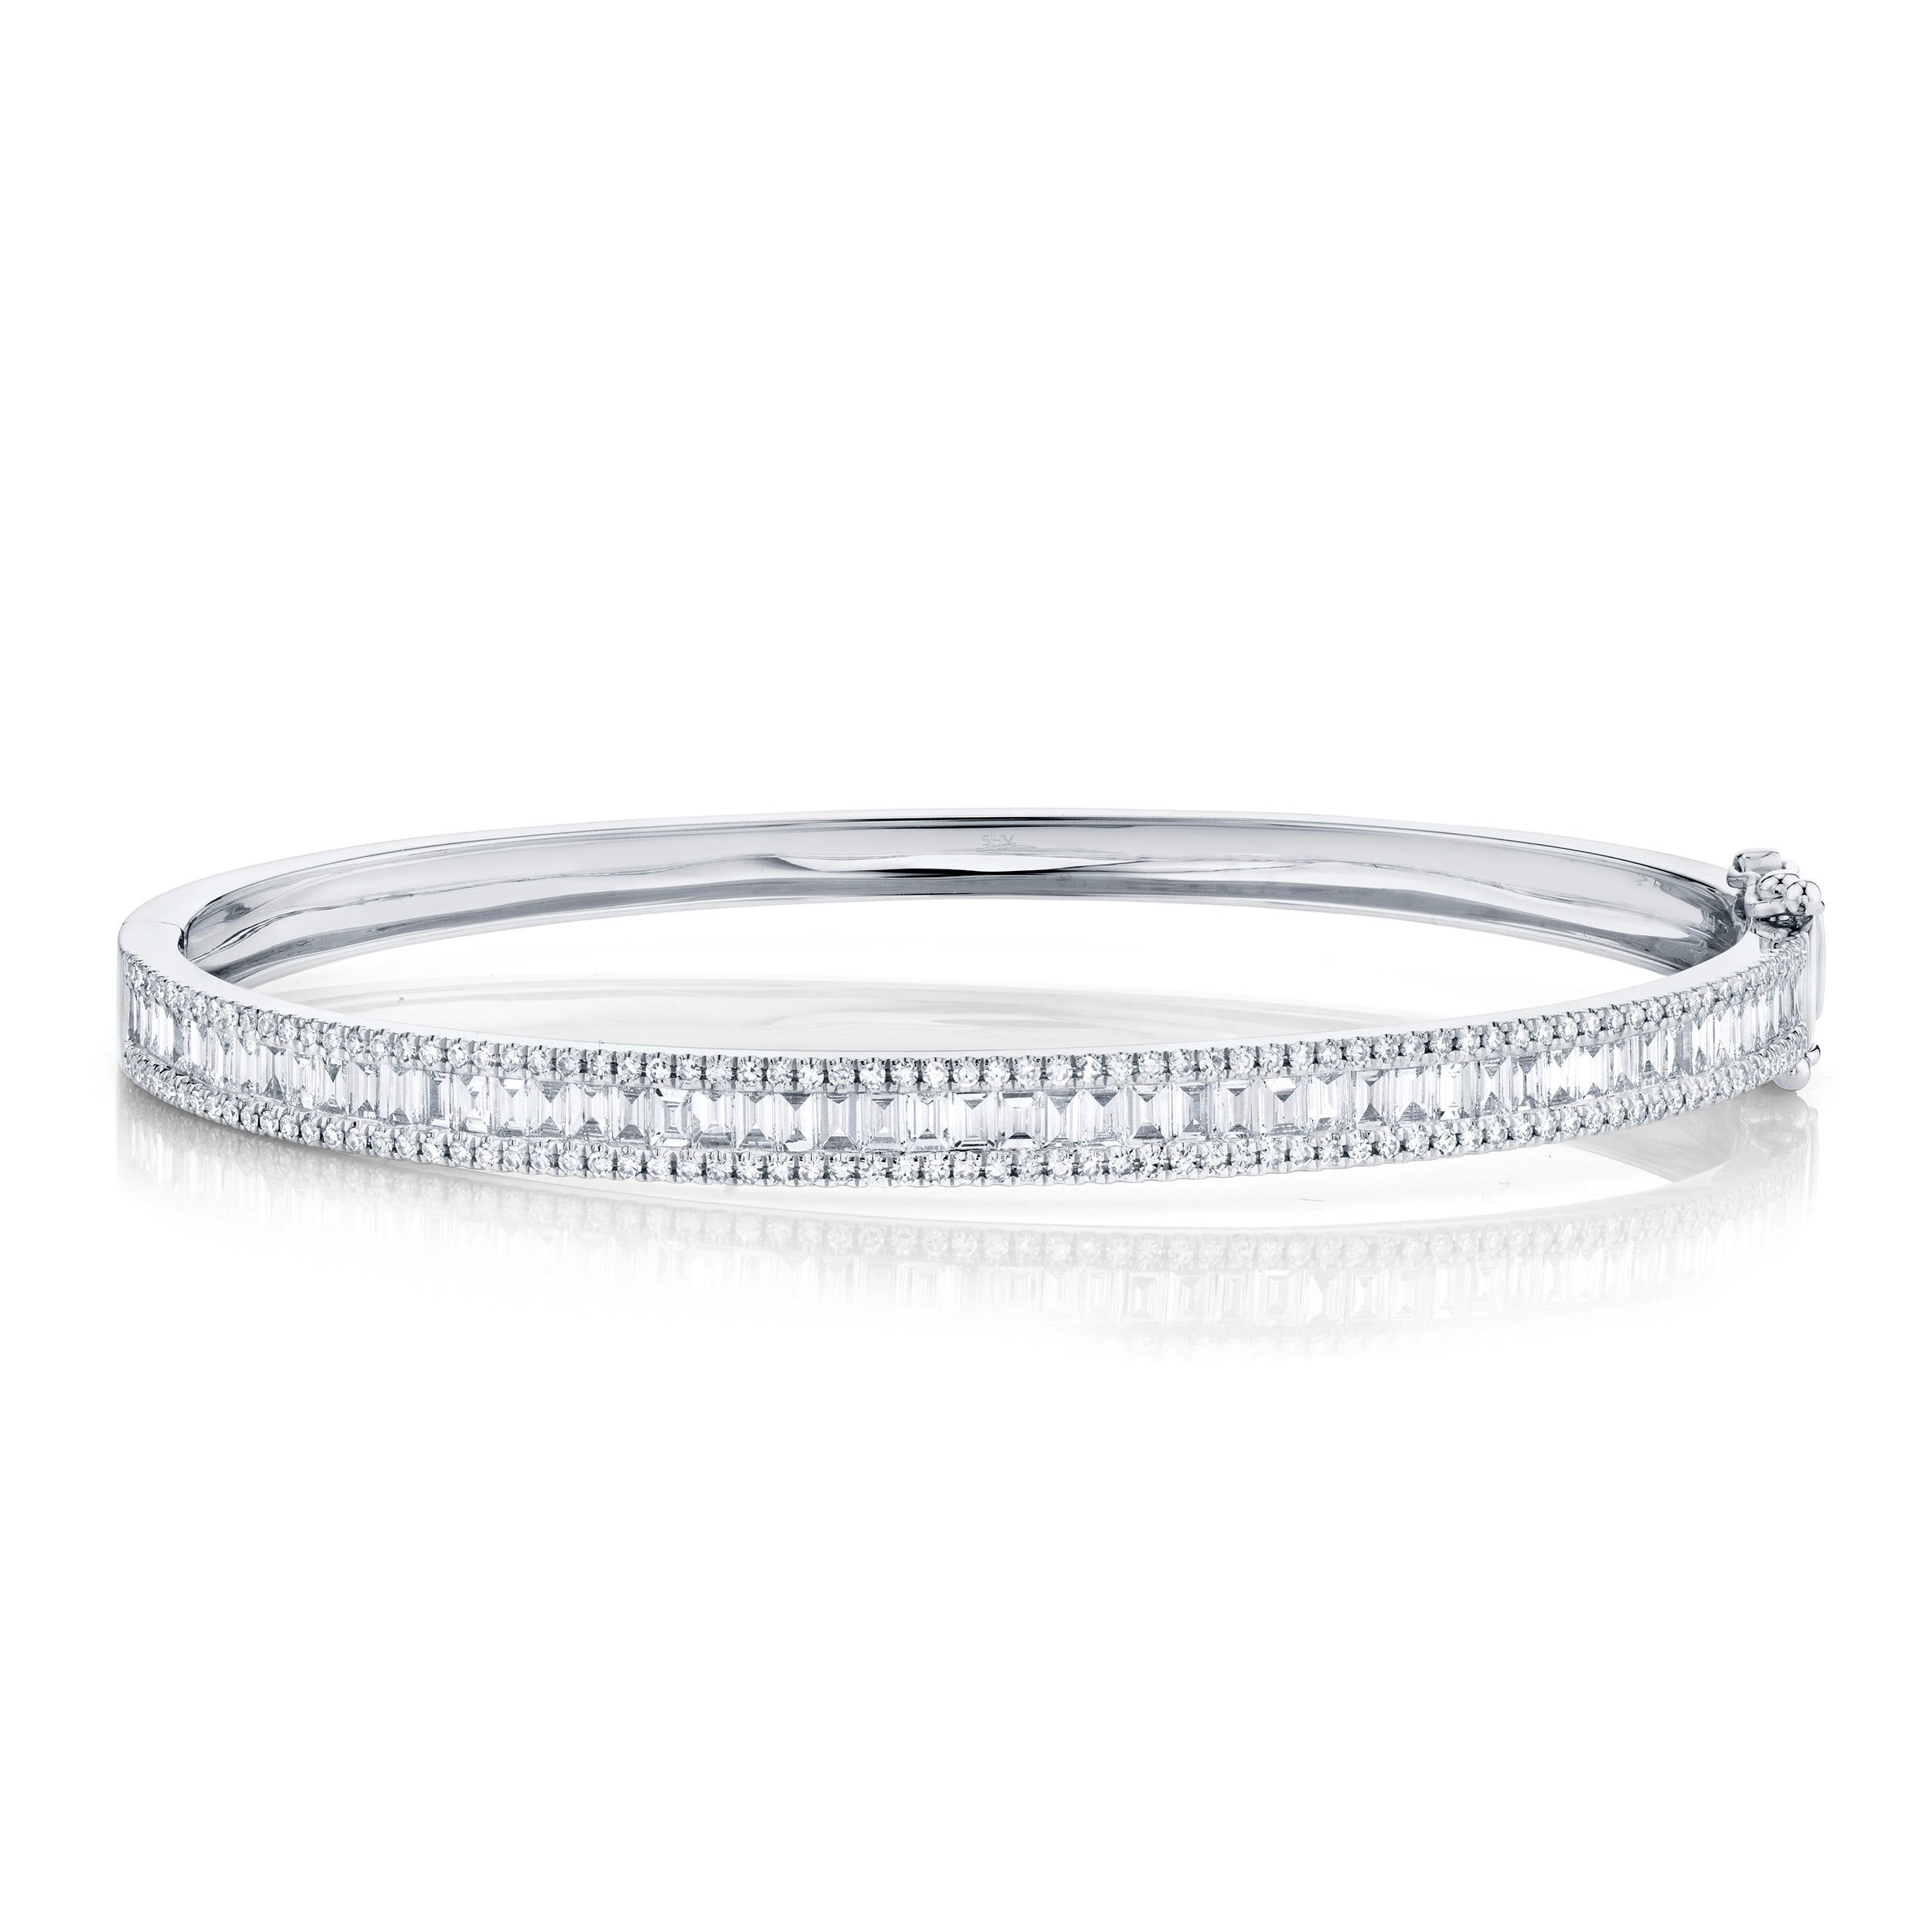 Shy Creation Diamond Baguette Bangle Bracelet in 14k White Gold  SC55004920ZS